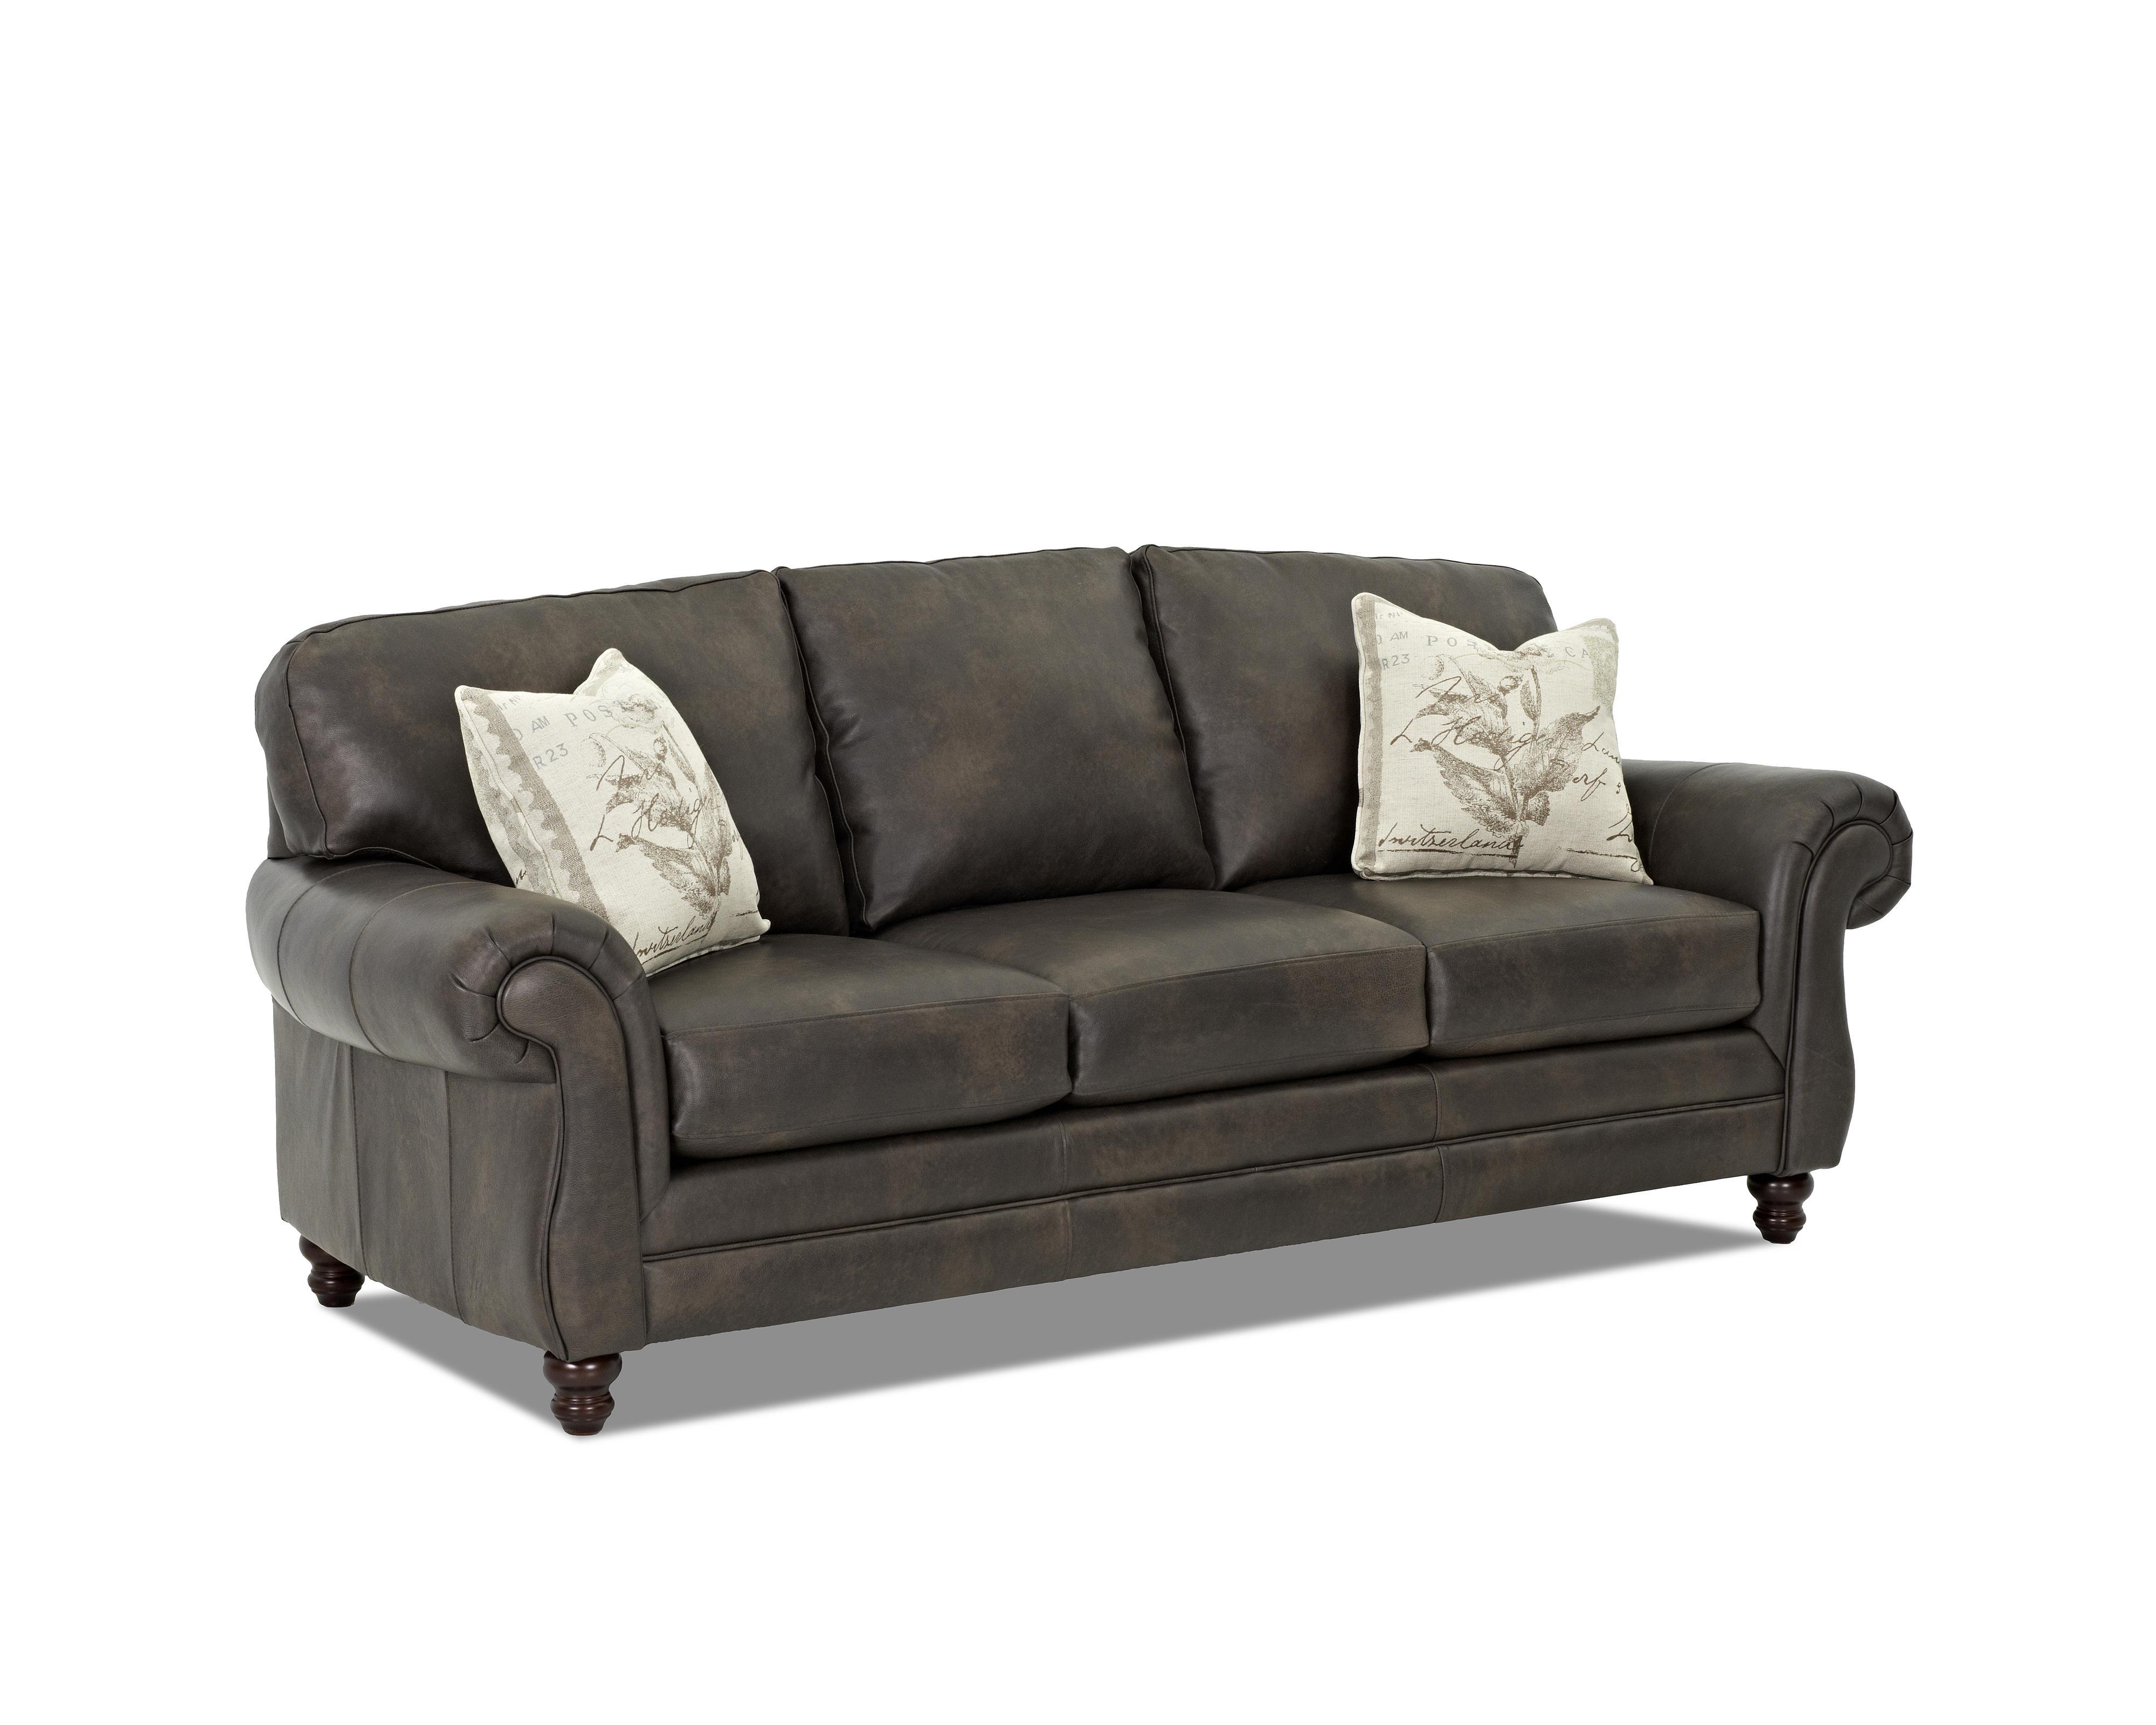 Klaussner Valiant Lt56200ap S Leather Sofa With Accent